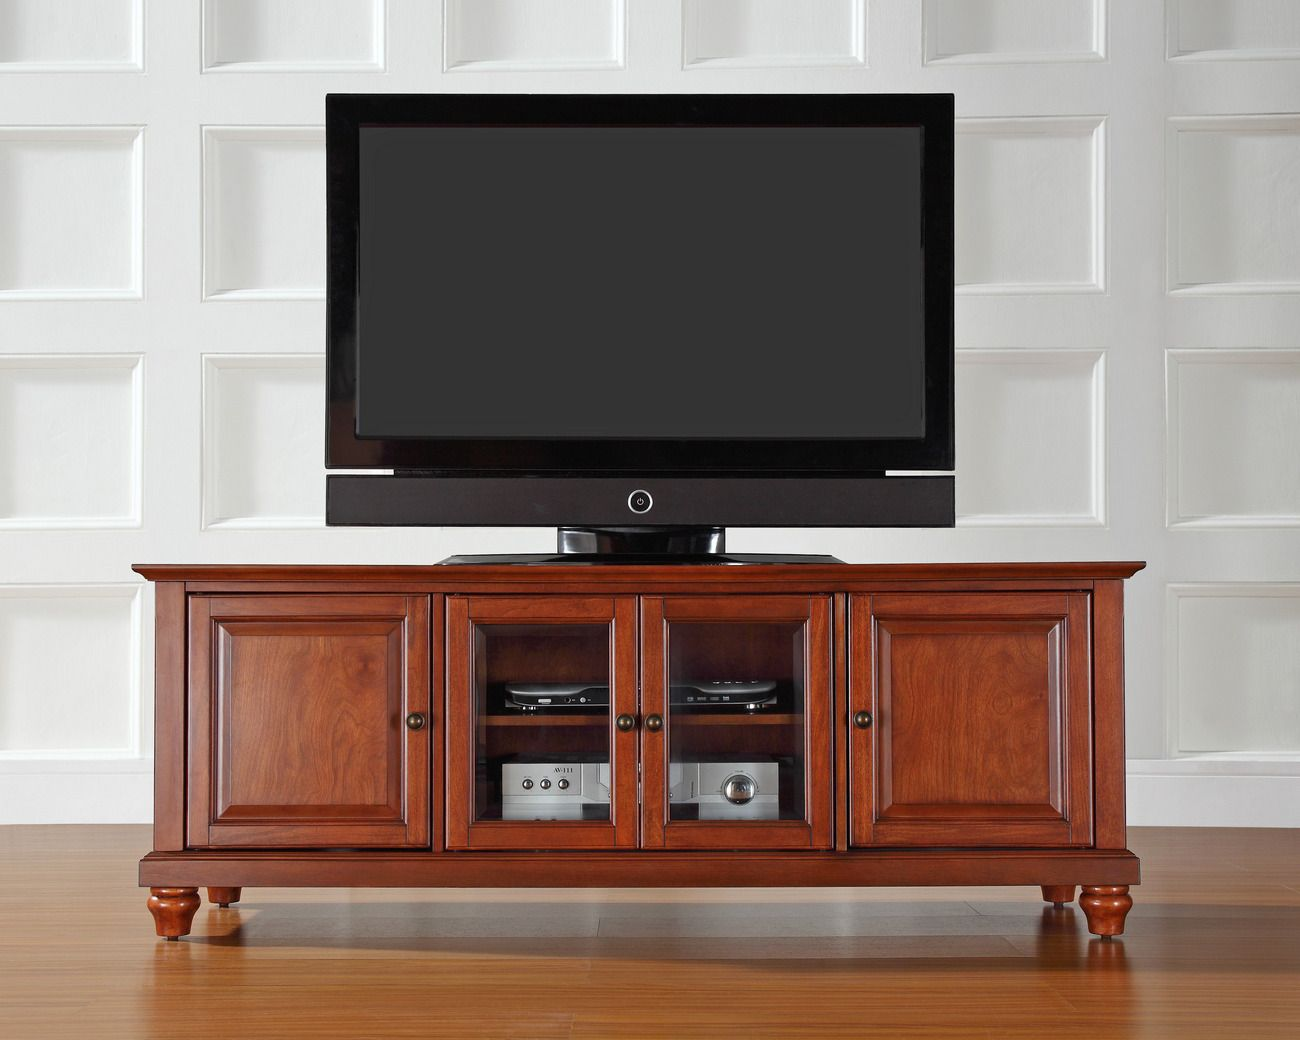 Cambridge 60 Low Profile Tv Stand In Classic Cherry Finish Crosley Kf10005dch In 2021 Low Profile Tv Stand 60 Tv Stand Tv Stand Wood